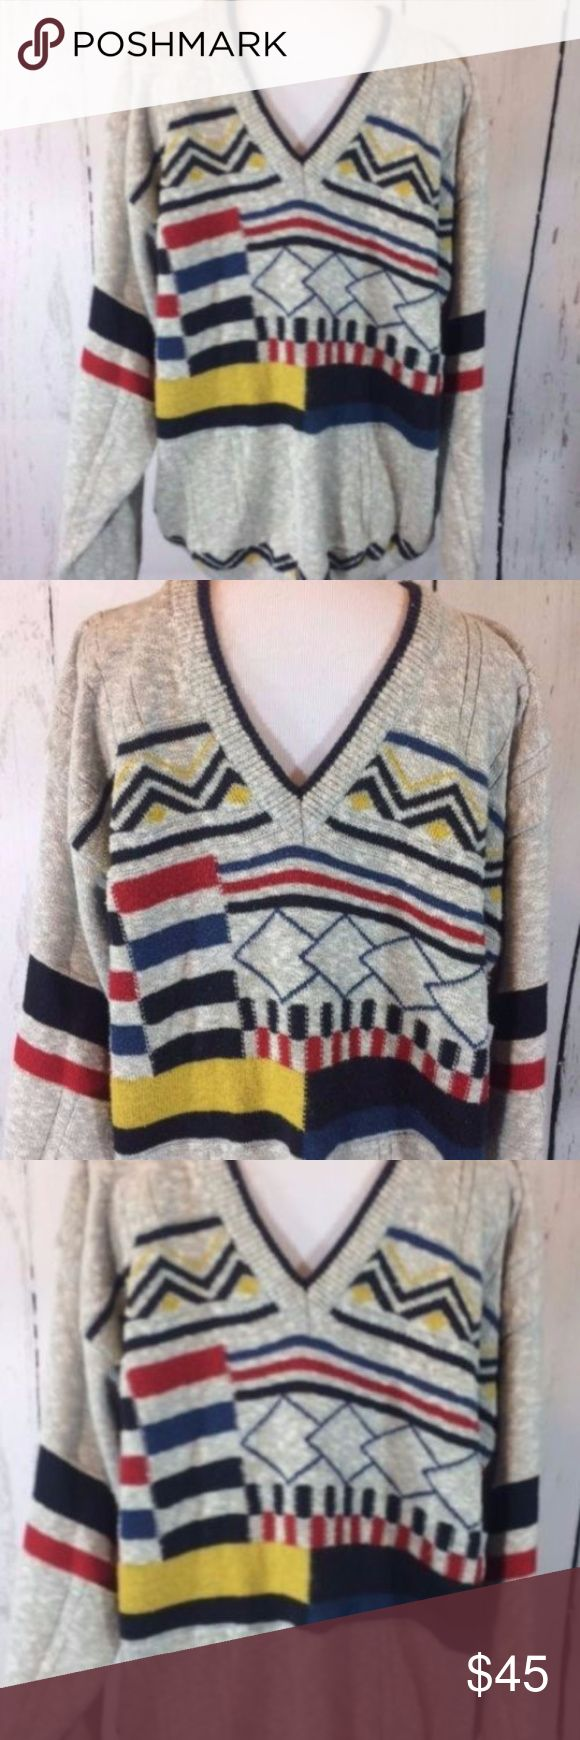 """Vintage Men's V Neck Sweater Western Germany This is not an Ugly Sweater!! BUT it is pretty fun and funky  Men's L V- Neck Sweater Maremma Geometric Made in Western Germany Eu Sz 50  cotton blend, not too heavy or hot, just right really sharp piece with great modernist colors and print  Chest flat font pit to pit 24"""" Sleeve 25"""" Total Length 27"""" Between Back Shoulder Seam 24"""" Maremma Sweaters V-Neck"""